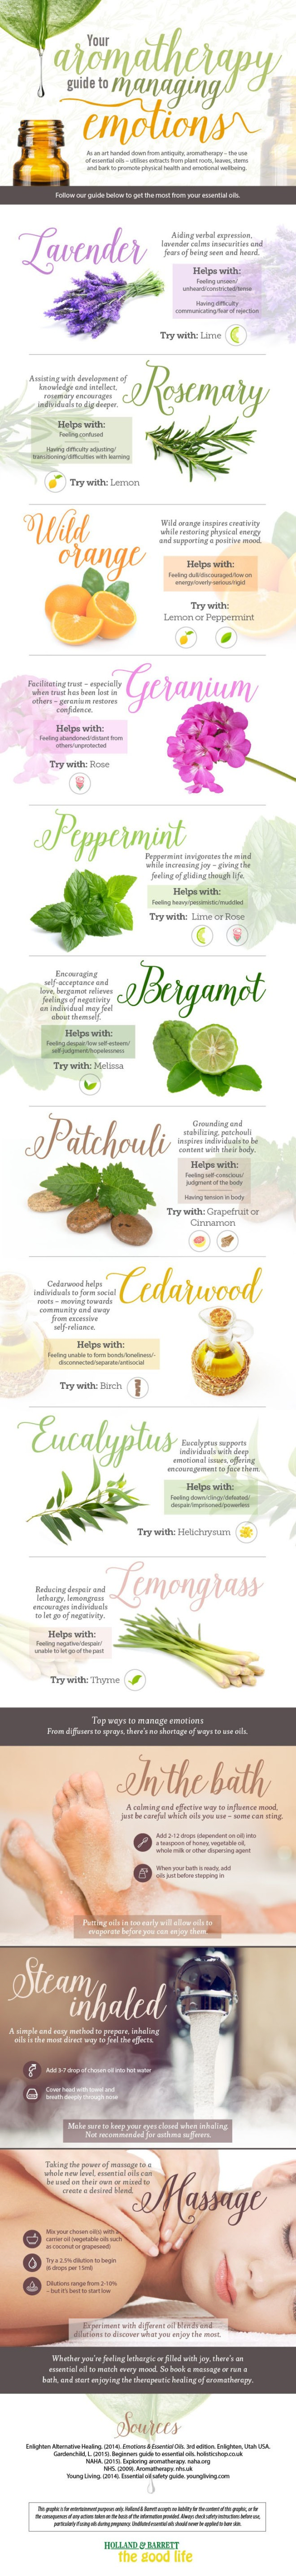 aromatherapy for emotional health